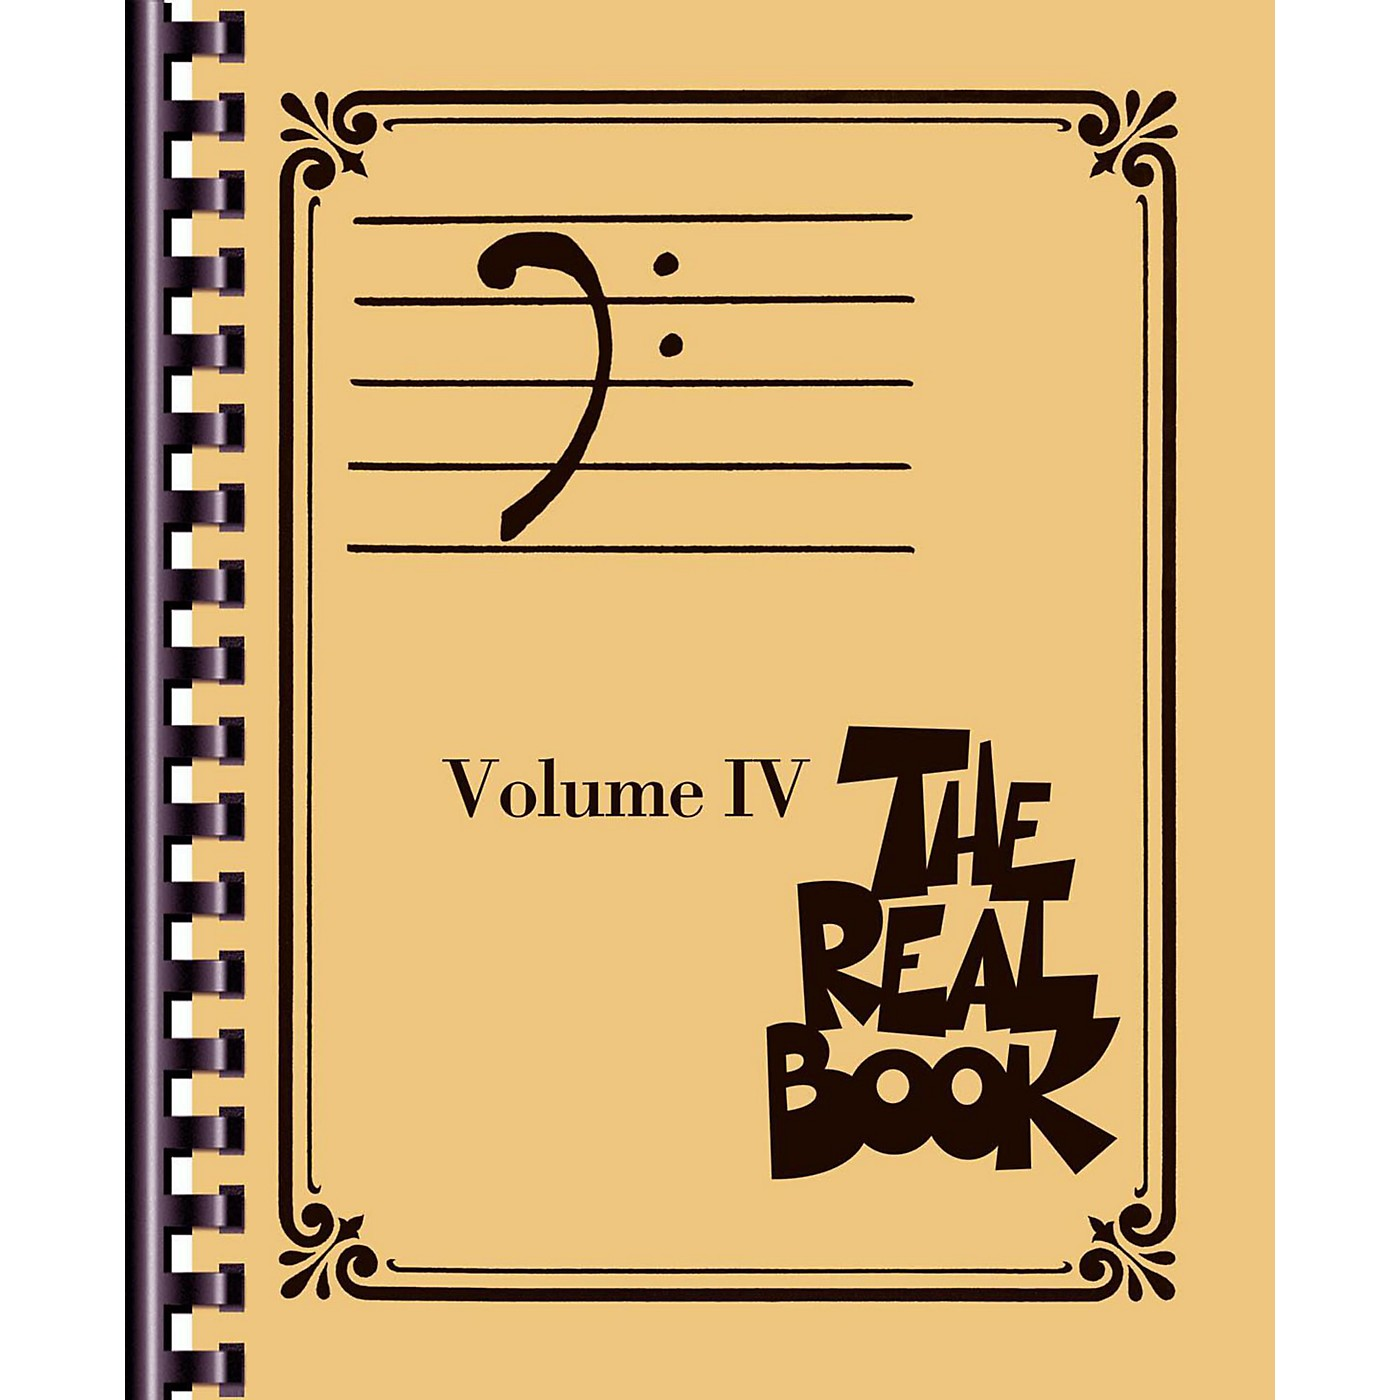 Hal Leonard The Real Book - Volume 4 (Bass Clef Edition) thumbnail